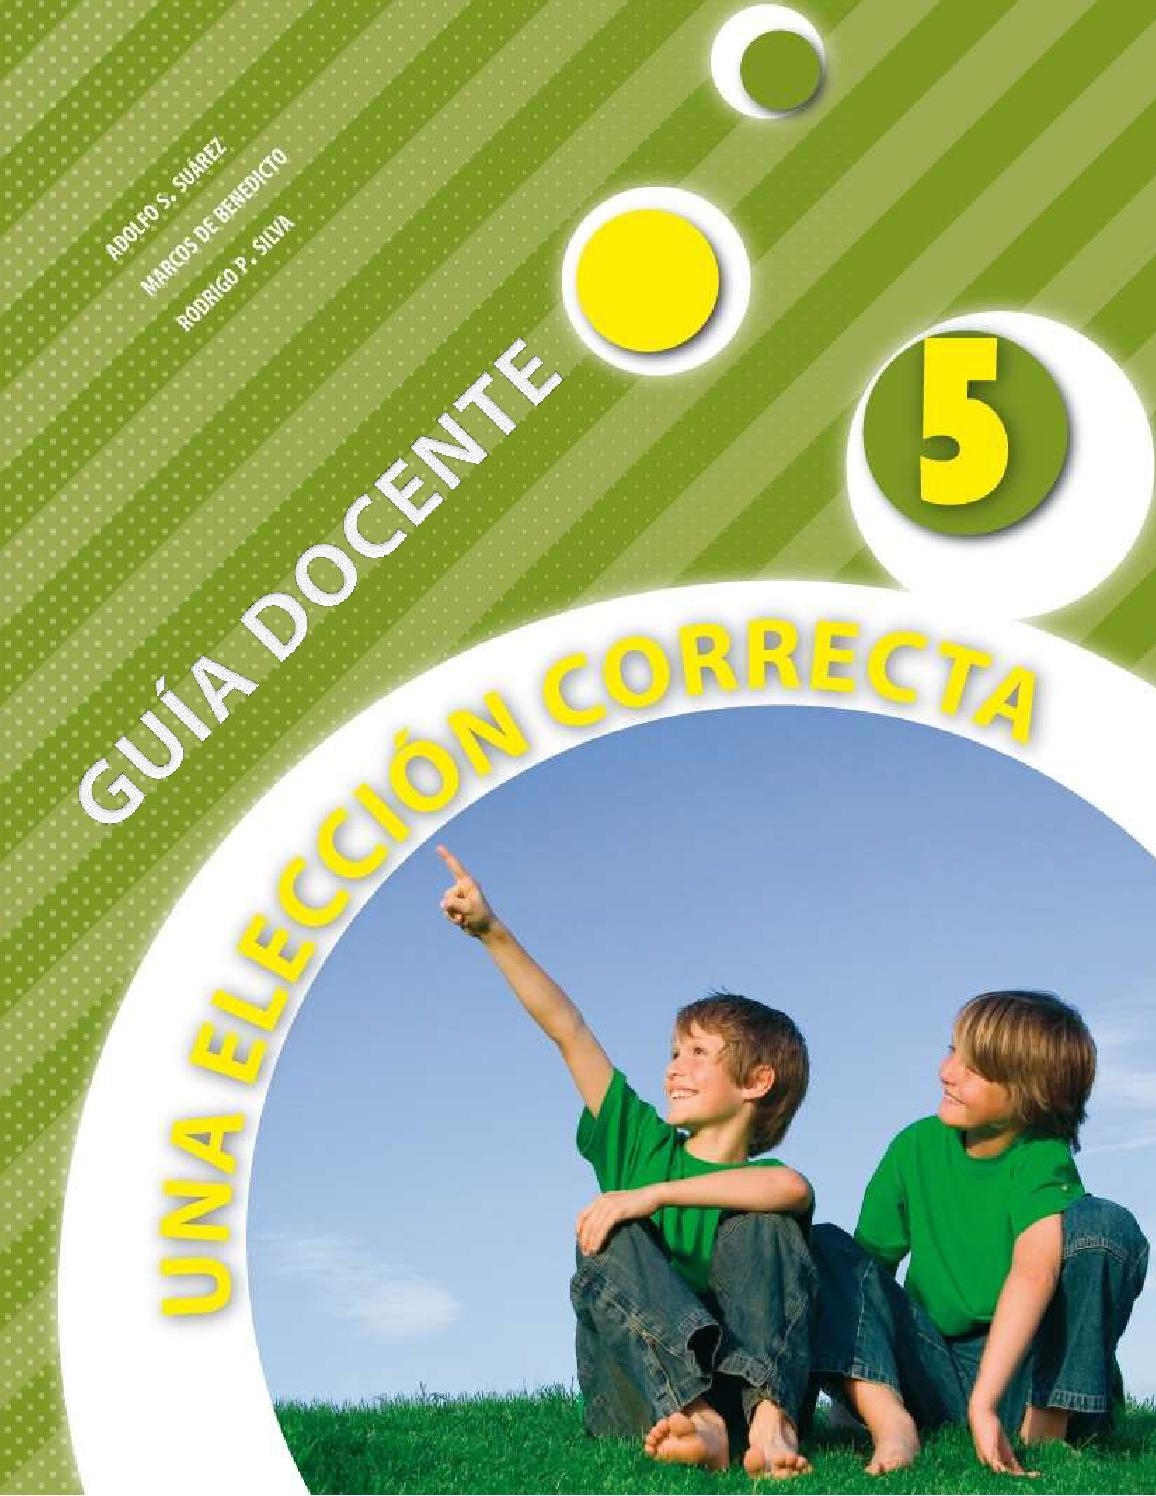 GD - Una elección correcta - Educación Bíblica by Editorial ACES - issuu